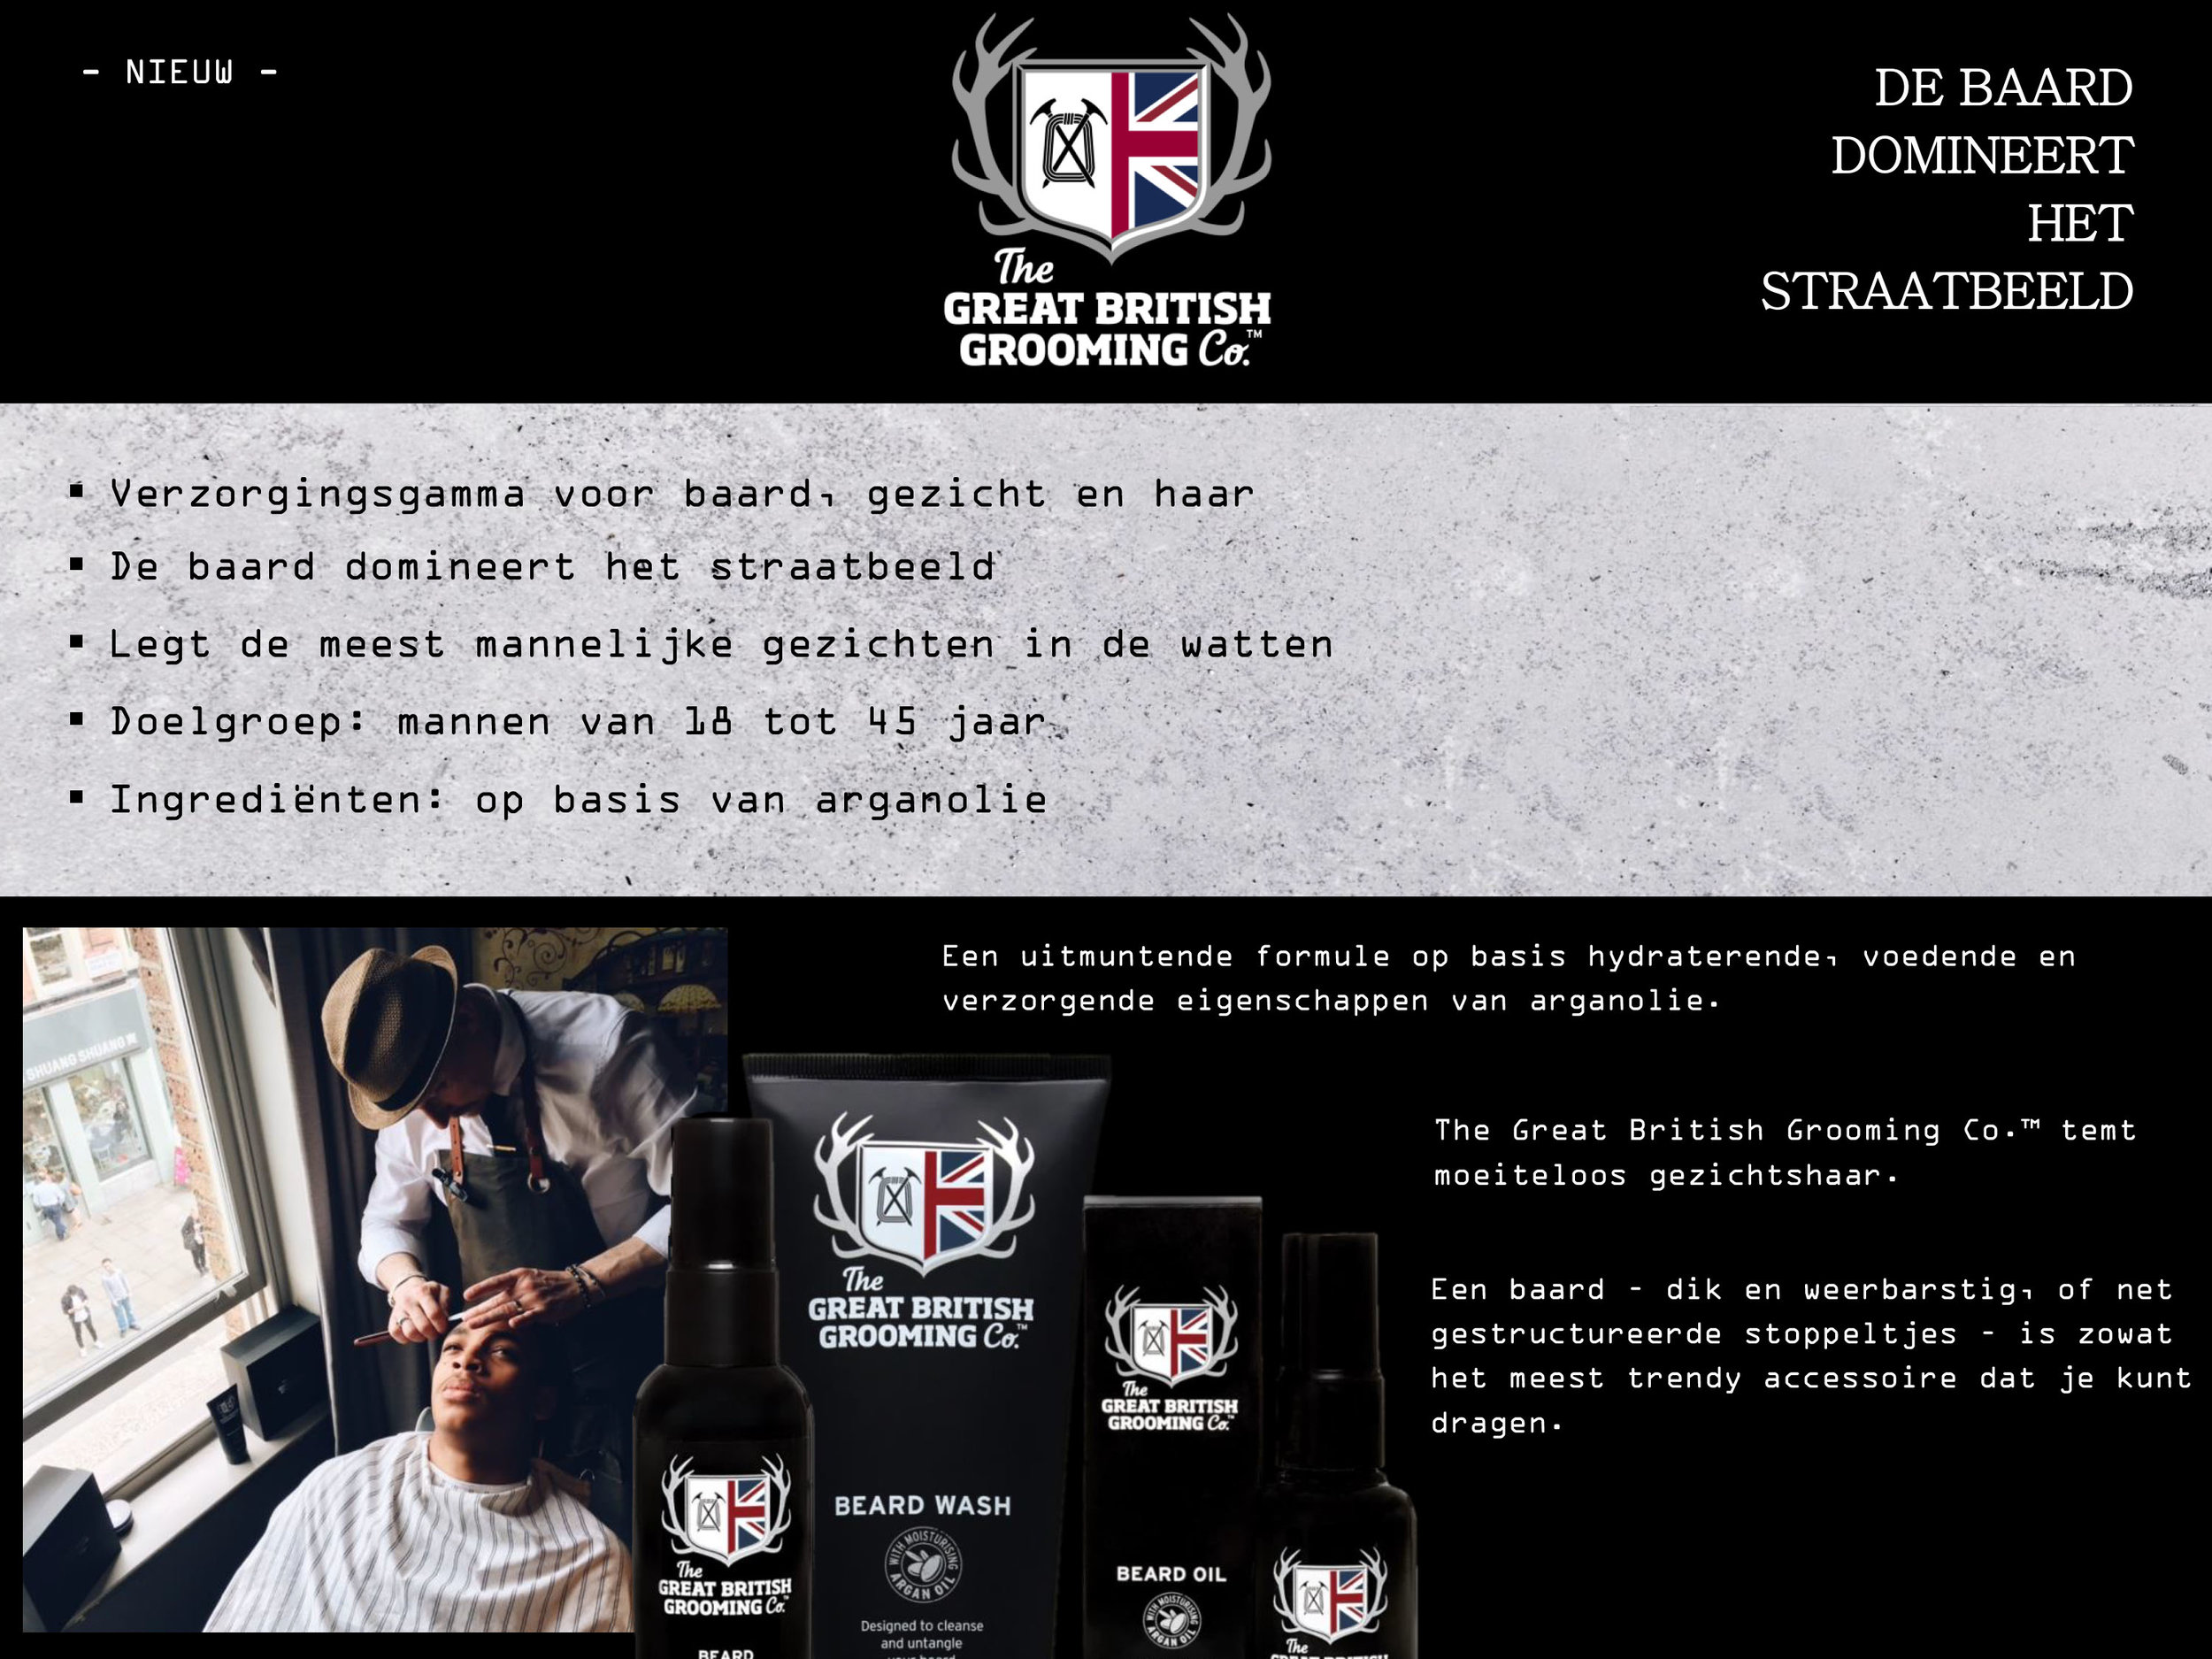 The Great British Grooming Co 2017 EXPORT NDL 19.05.17 - LR.jpg